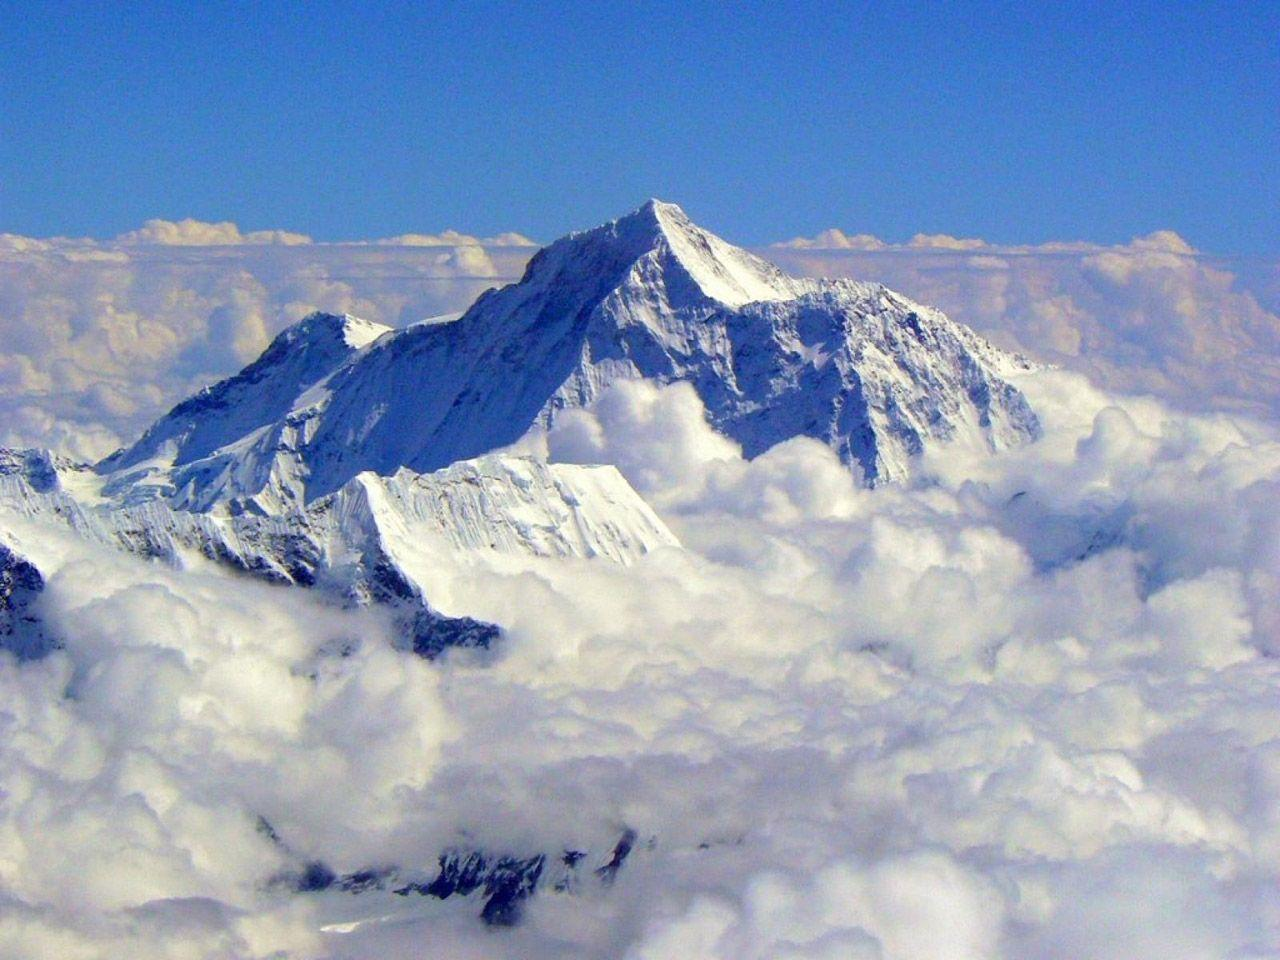 Mount Everest Wallpapers